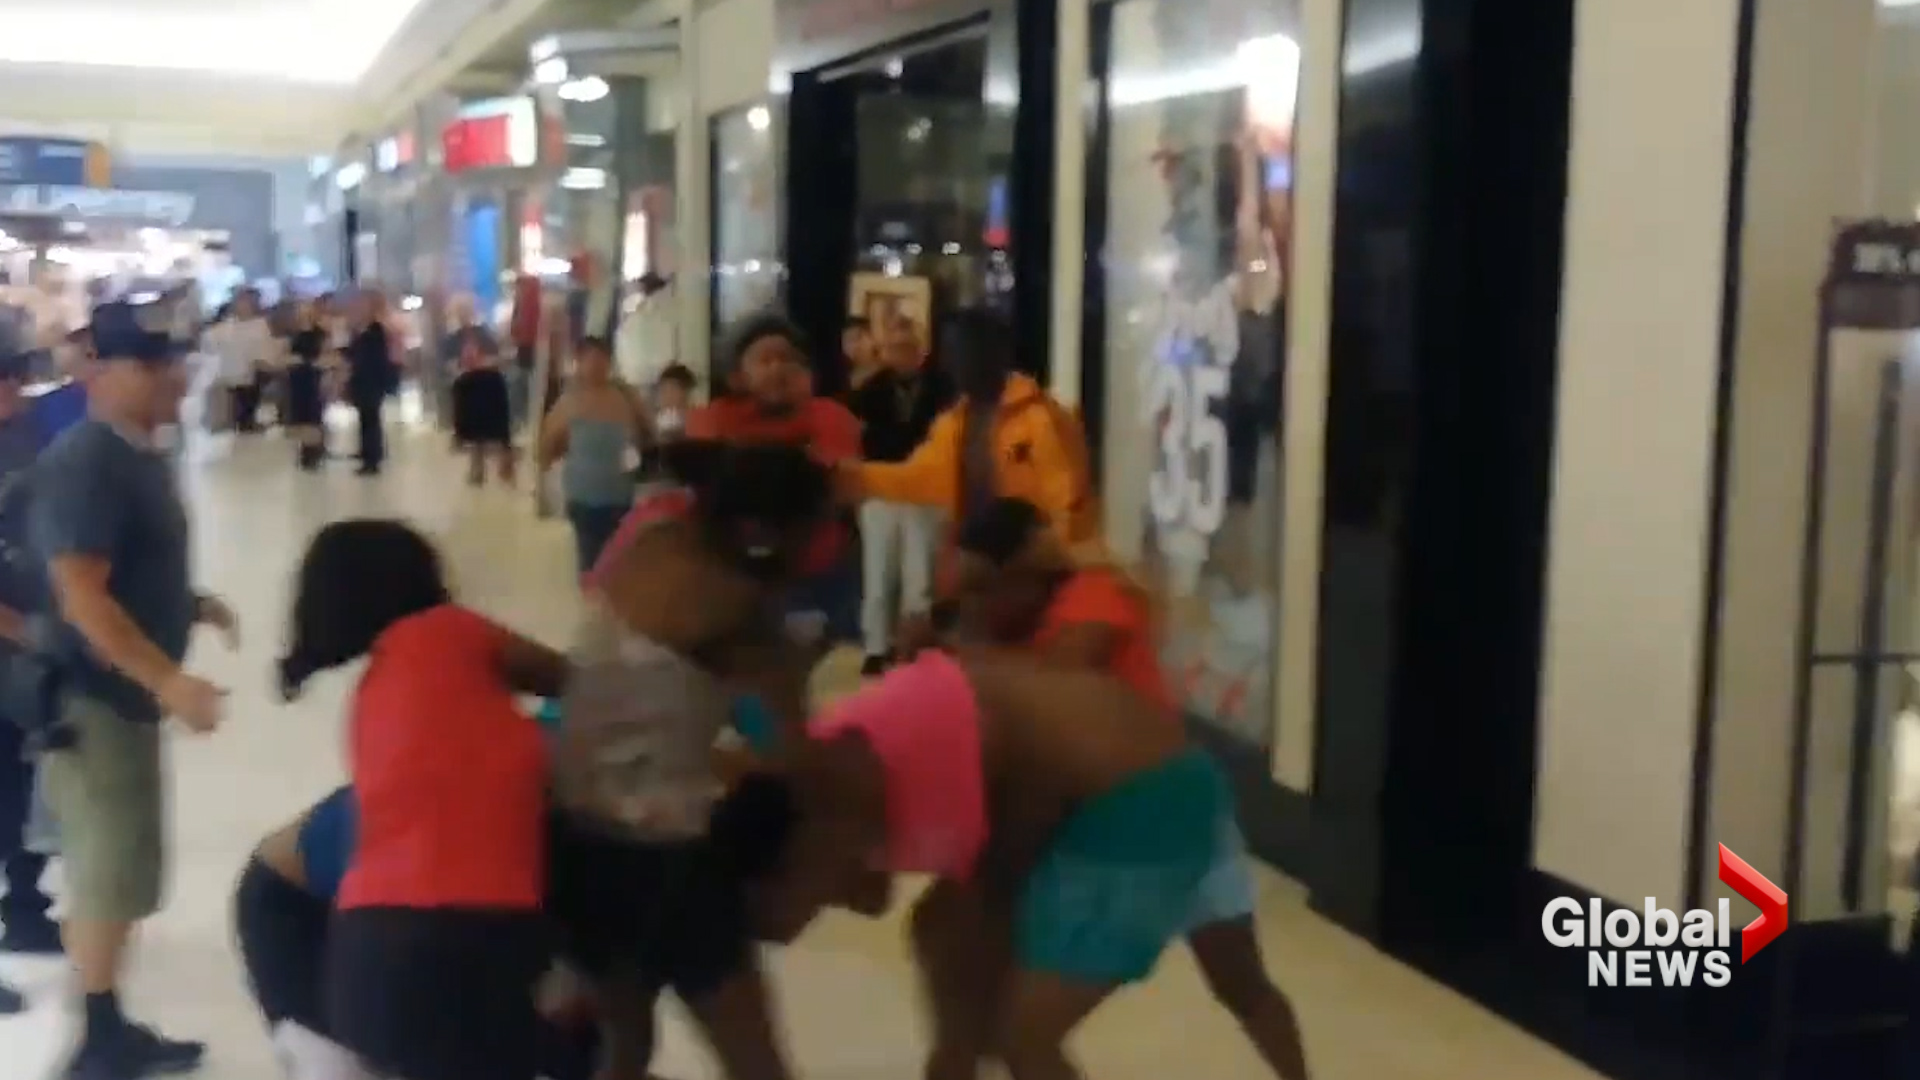 Child in stroller caught in middle of chaotic mall fight